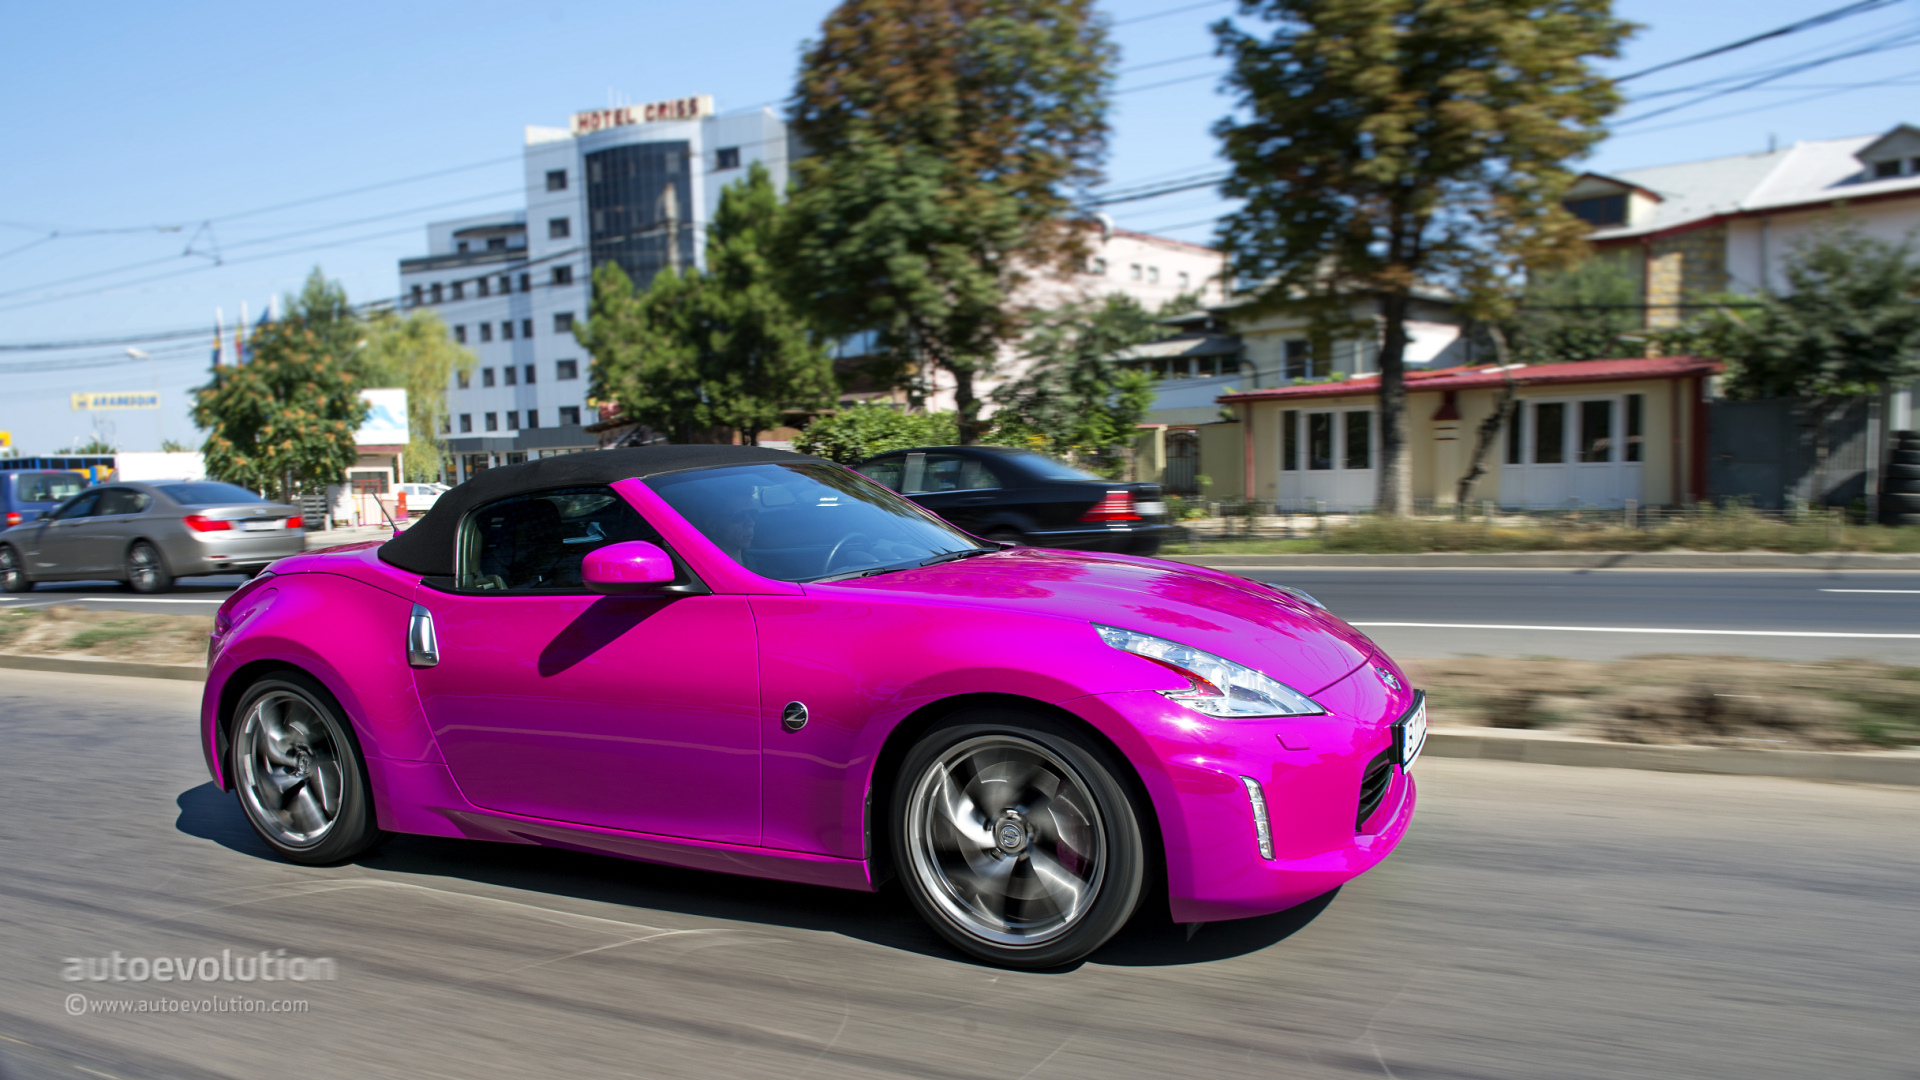 2014 nissan 370z roadster review autoevolution. Black Bedroom Furniture Sets. Home Design Ideas